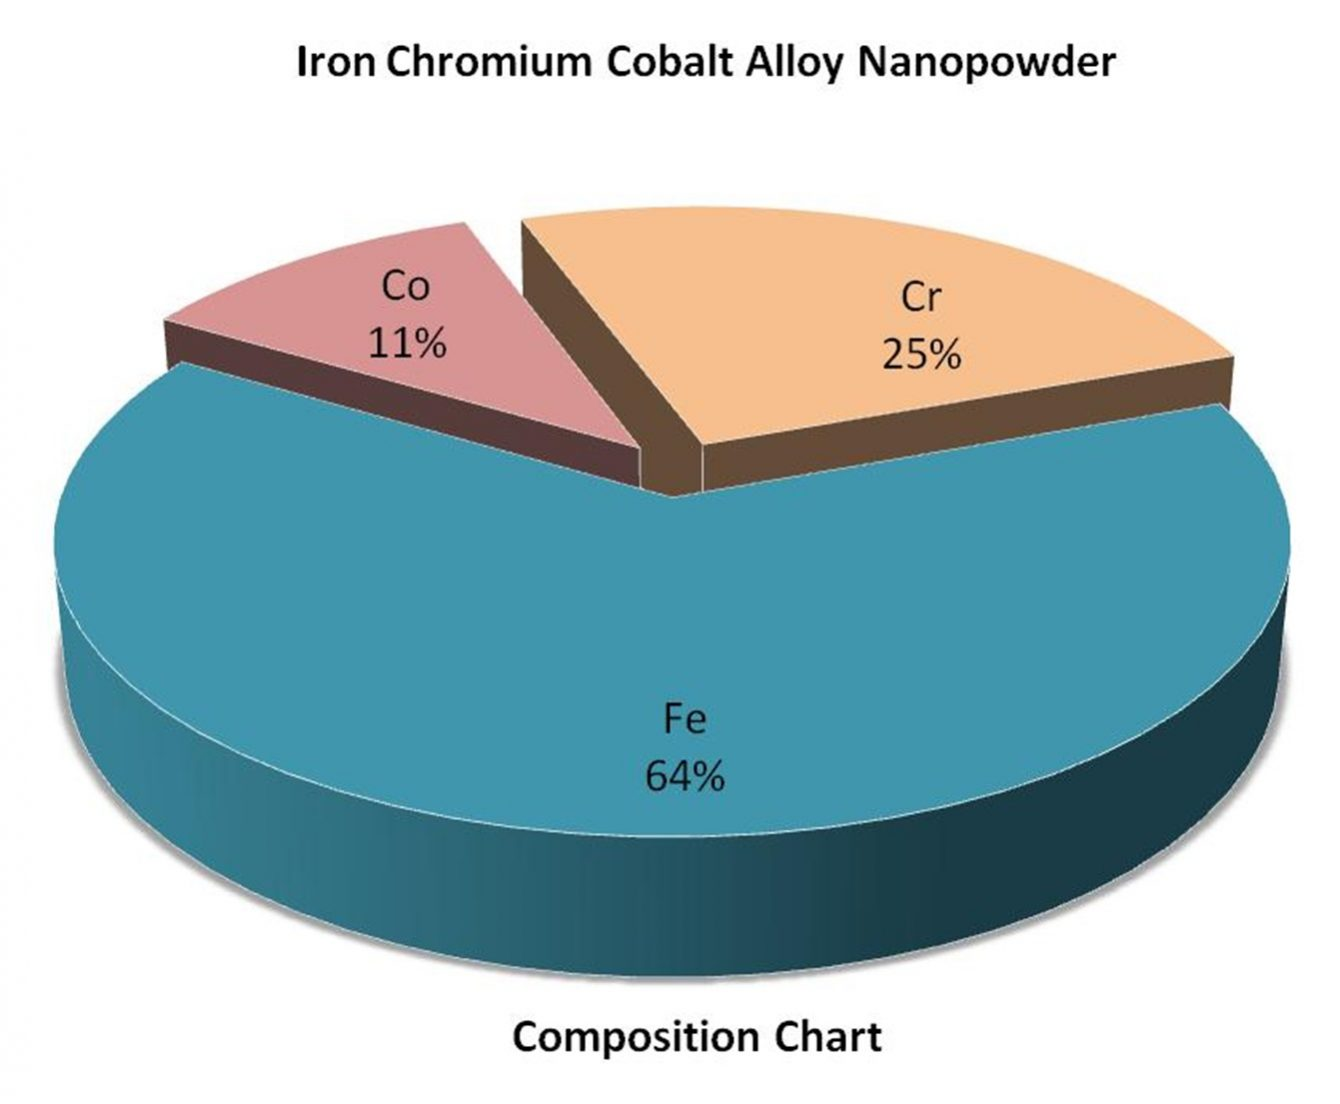 Composition Chart - Fe:Cr:Co Alloy Nanoparticles